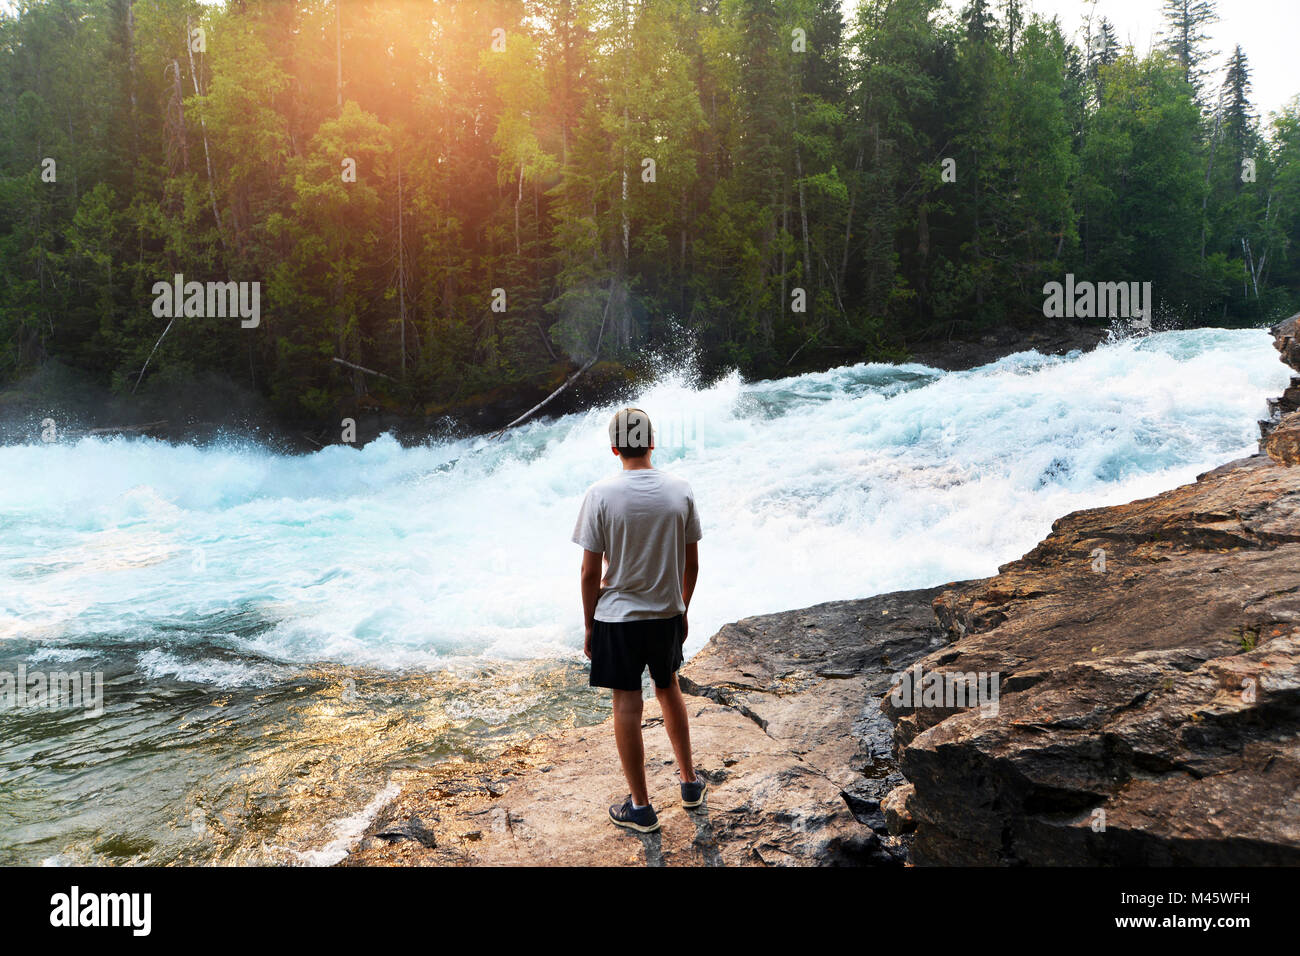 Teenage boy watches salmon leaping at Grey Wells National Park, Clearwater, British Columbia, Canada. - Stock Image